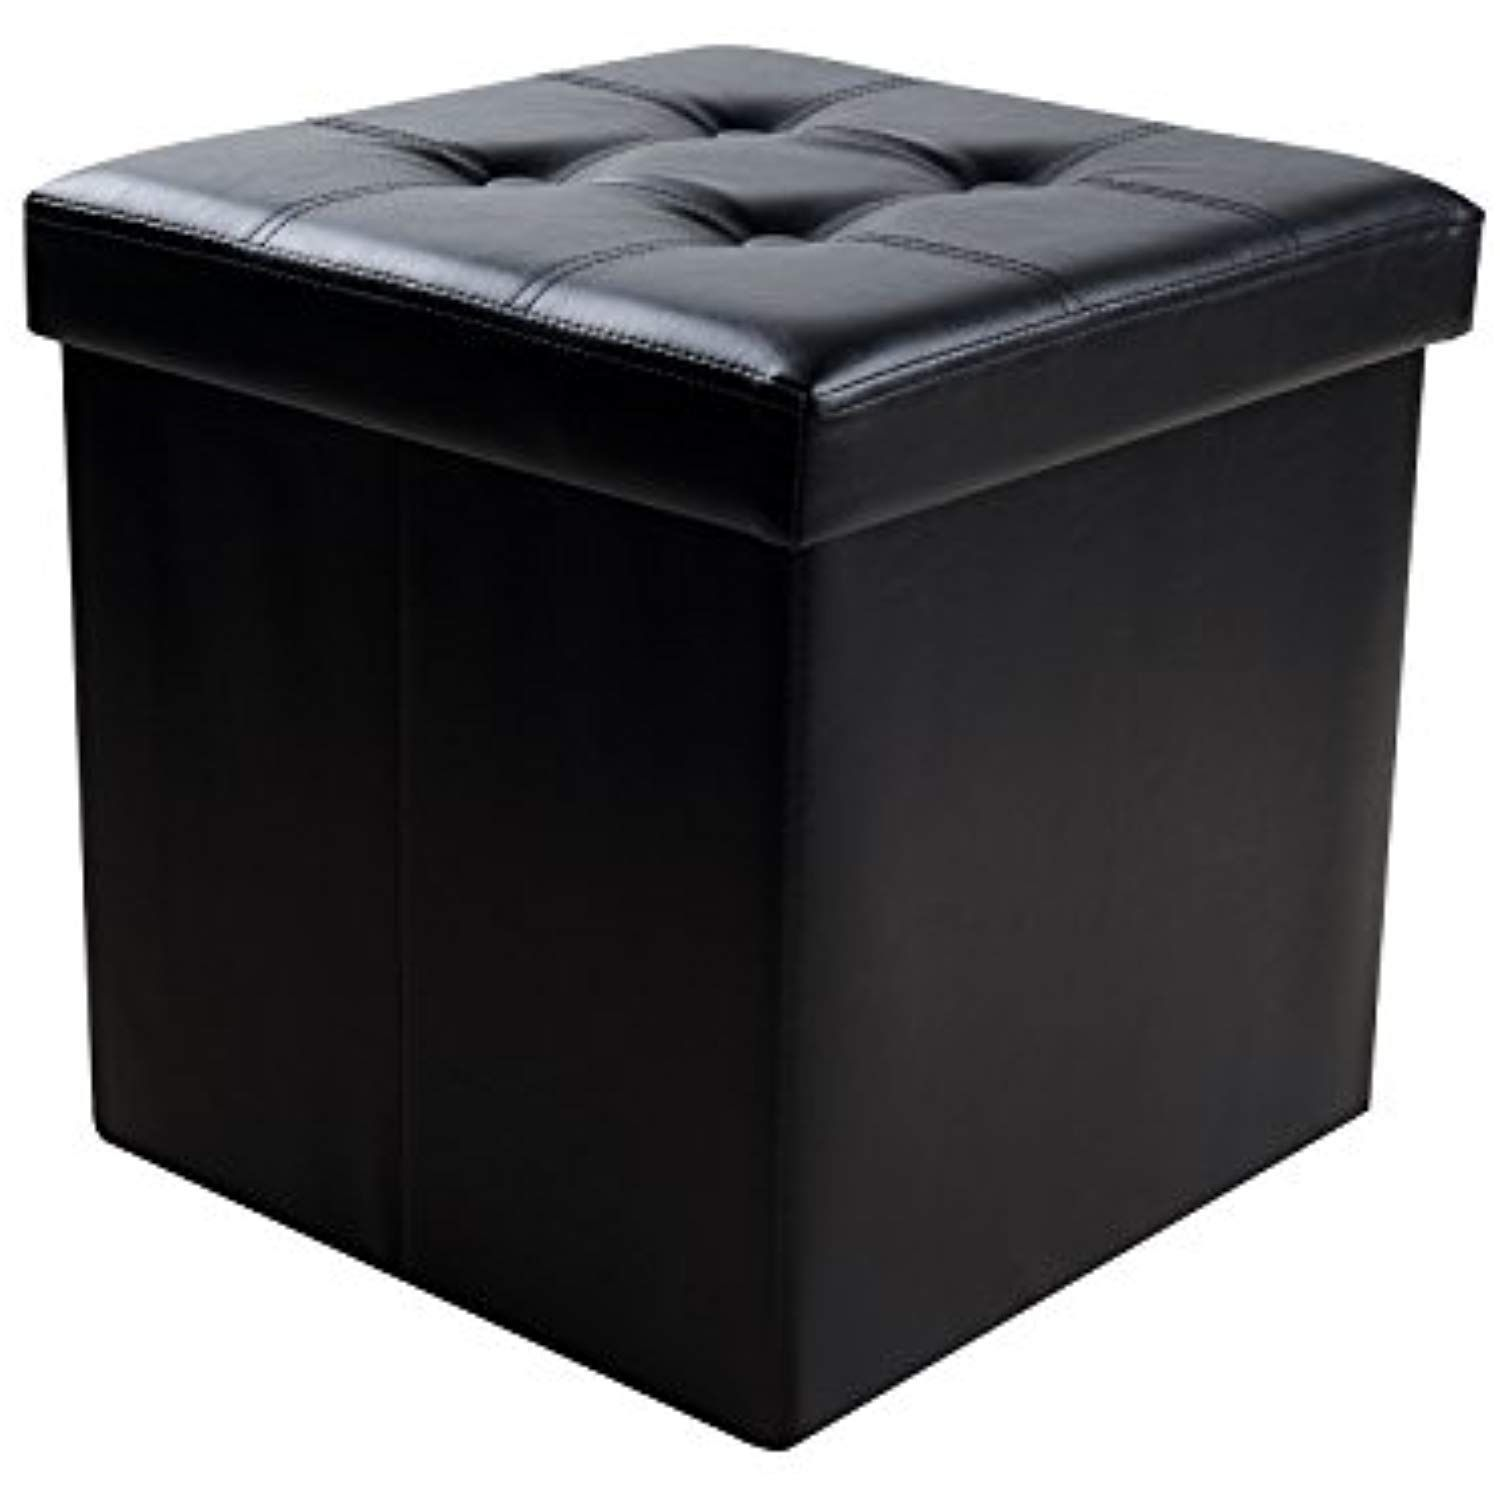 Super Sable Storage Ottoman Cube Foldable Bench 15 Faux Leather Gmtry Best Dining Table And Chair Ideas Images Gmtryco